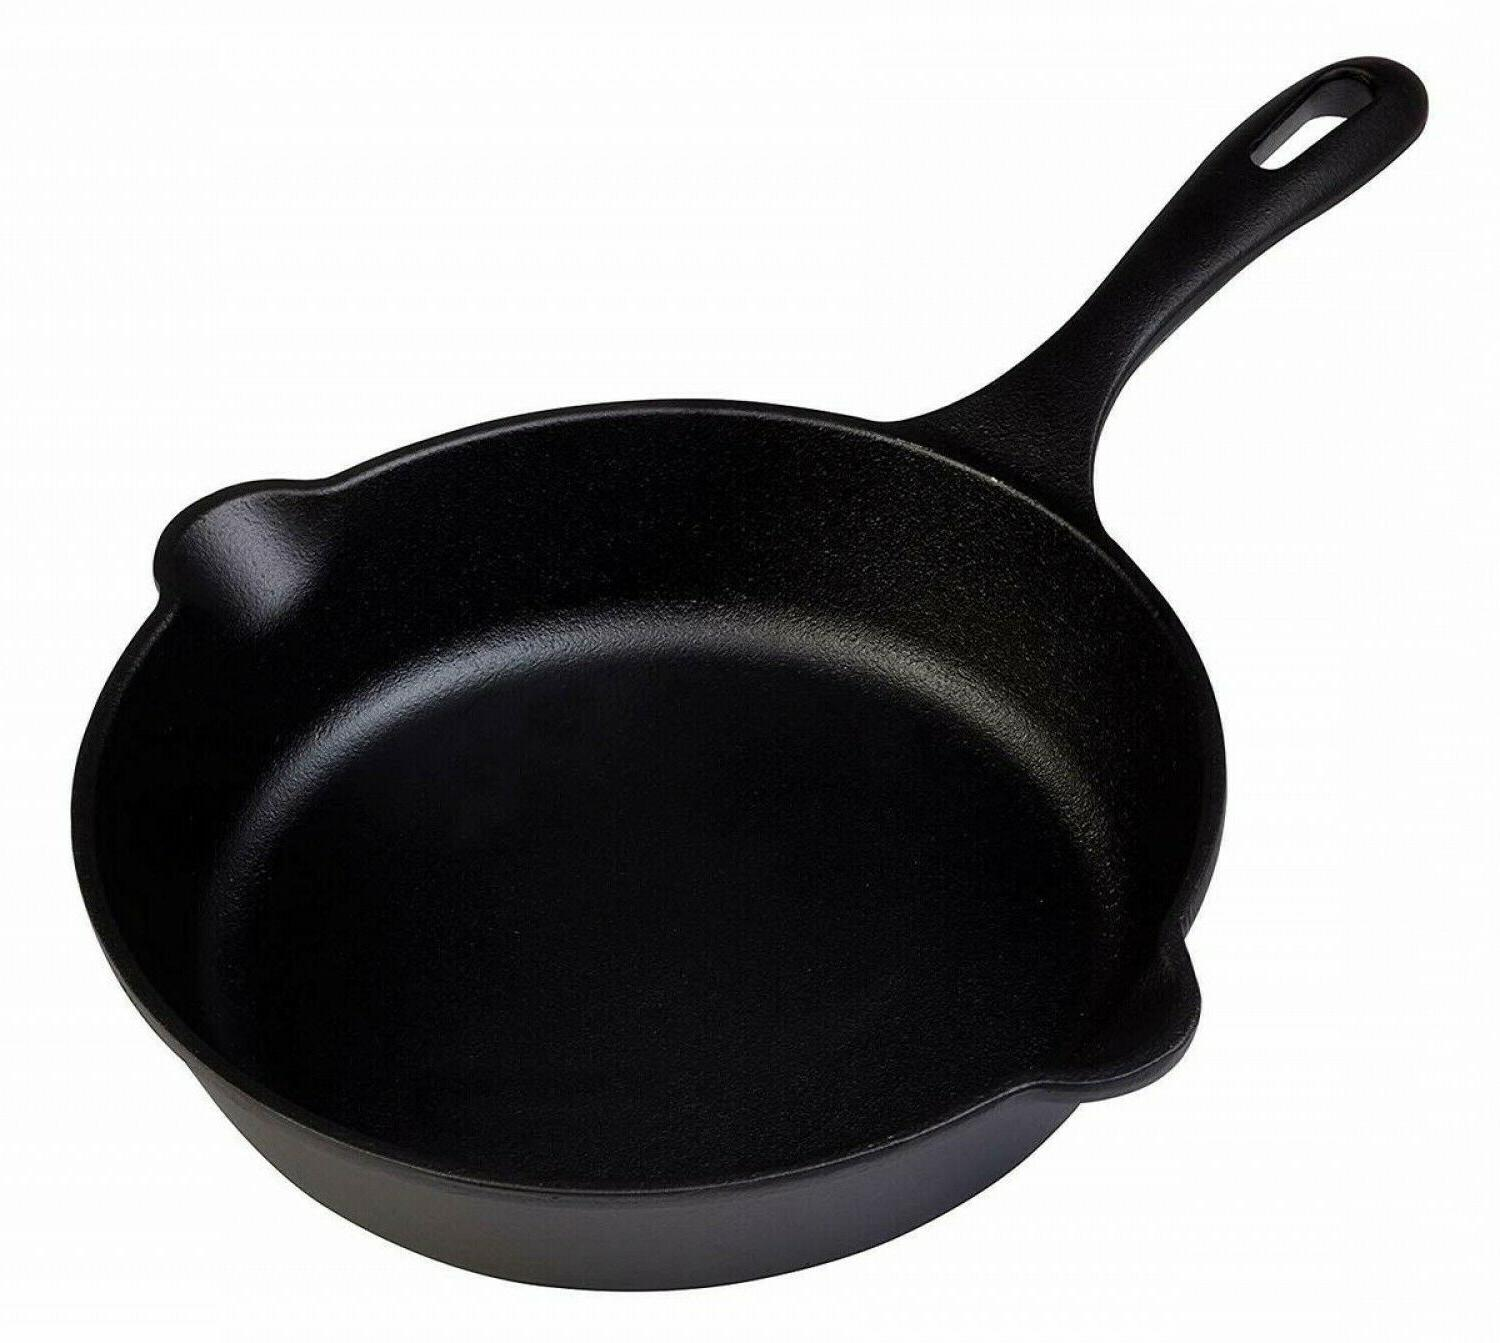 Cast Iron Pan 8-inch Camping